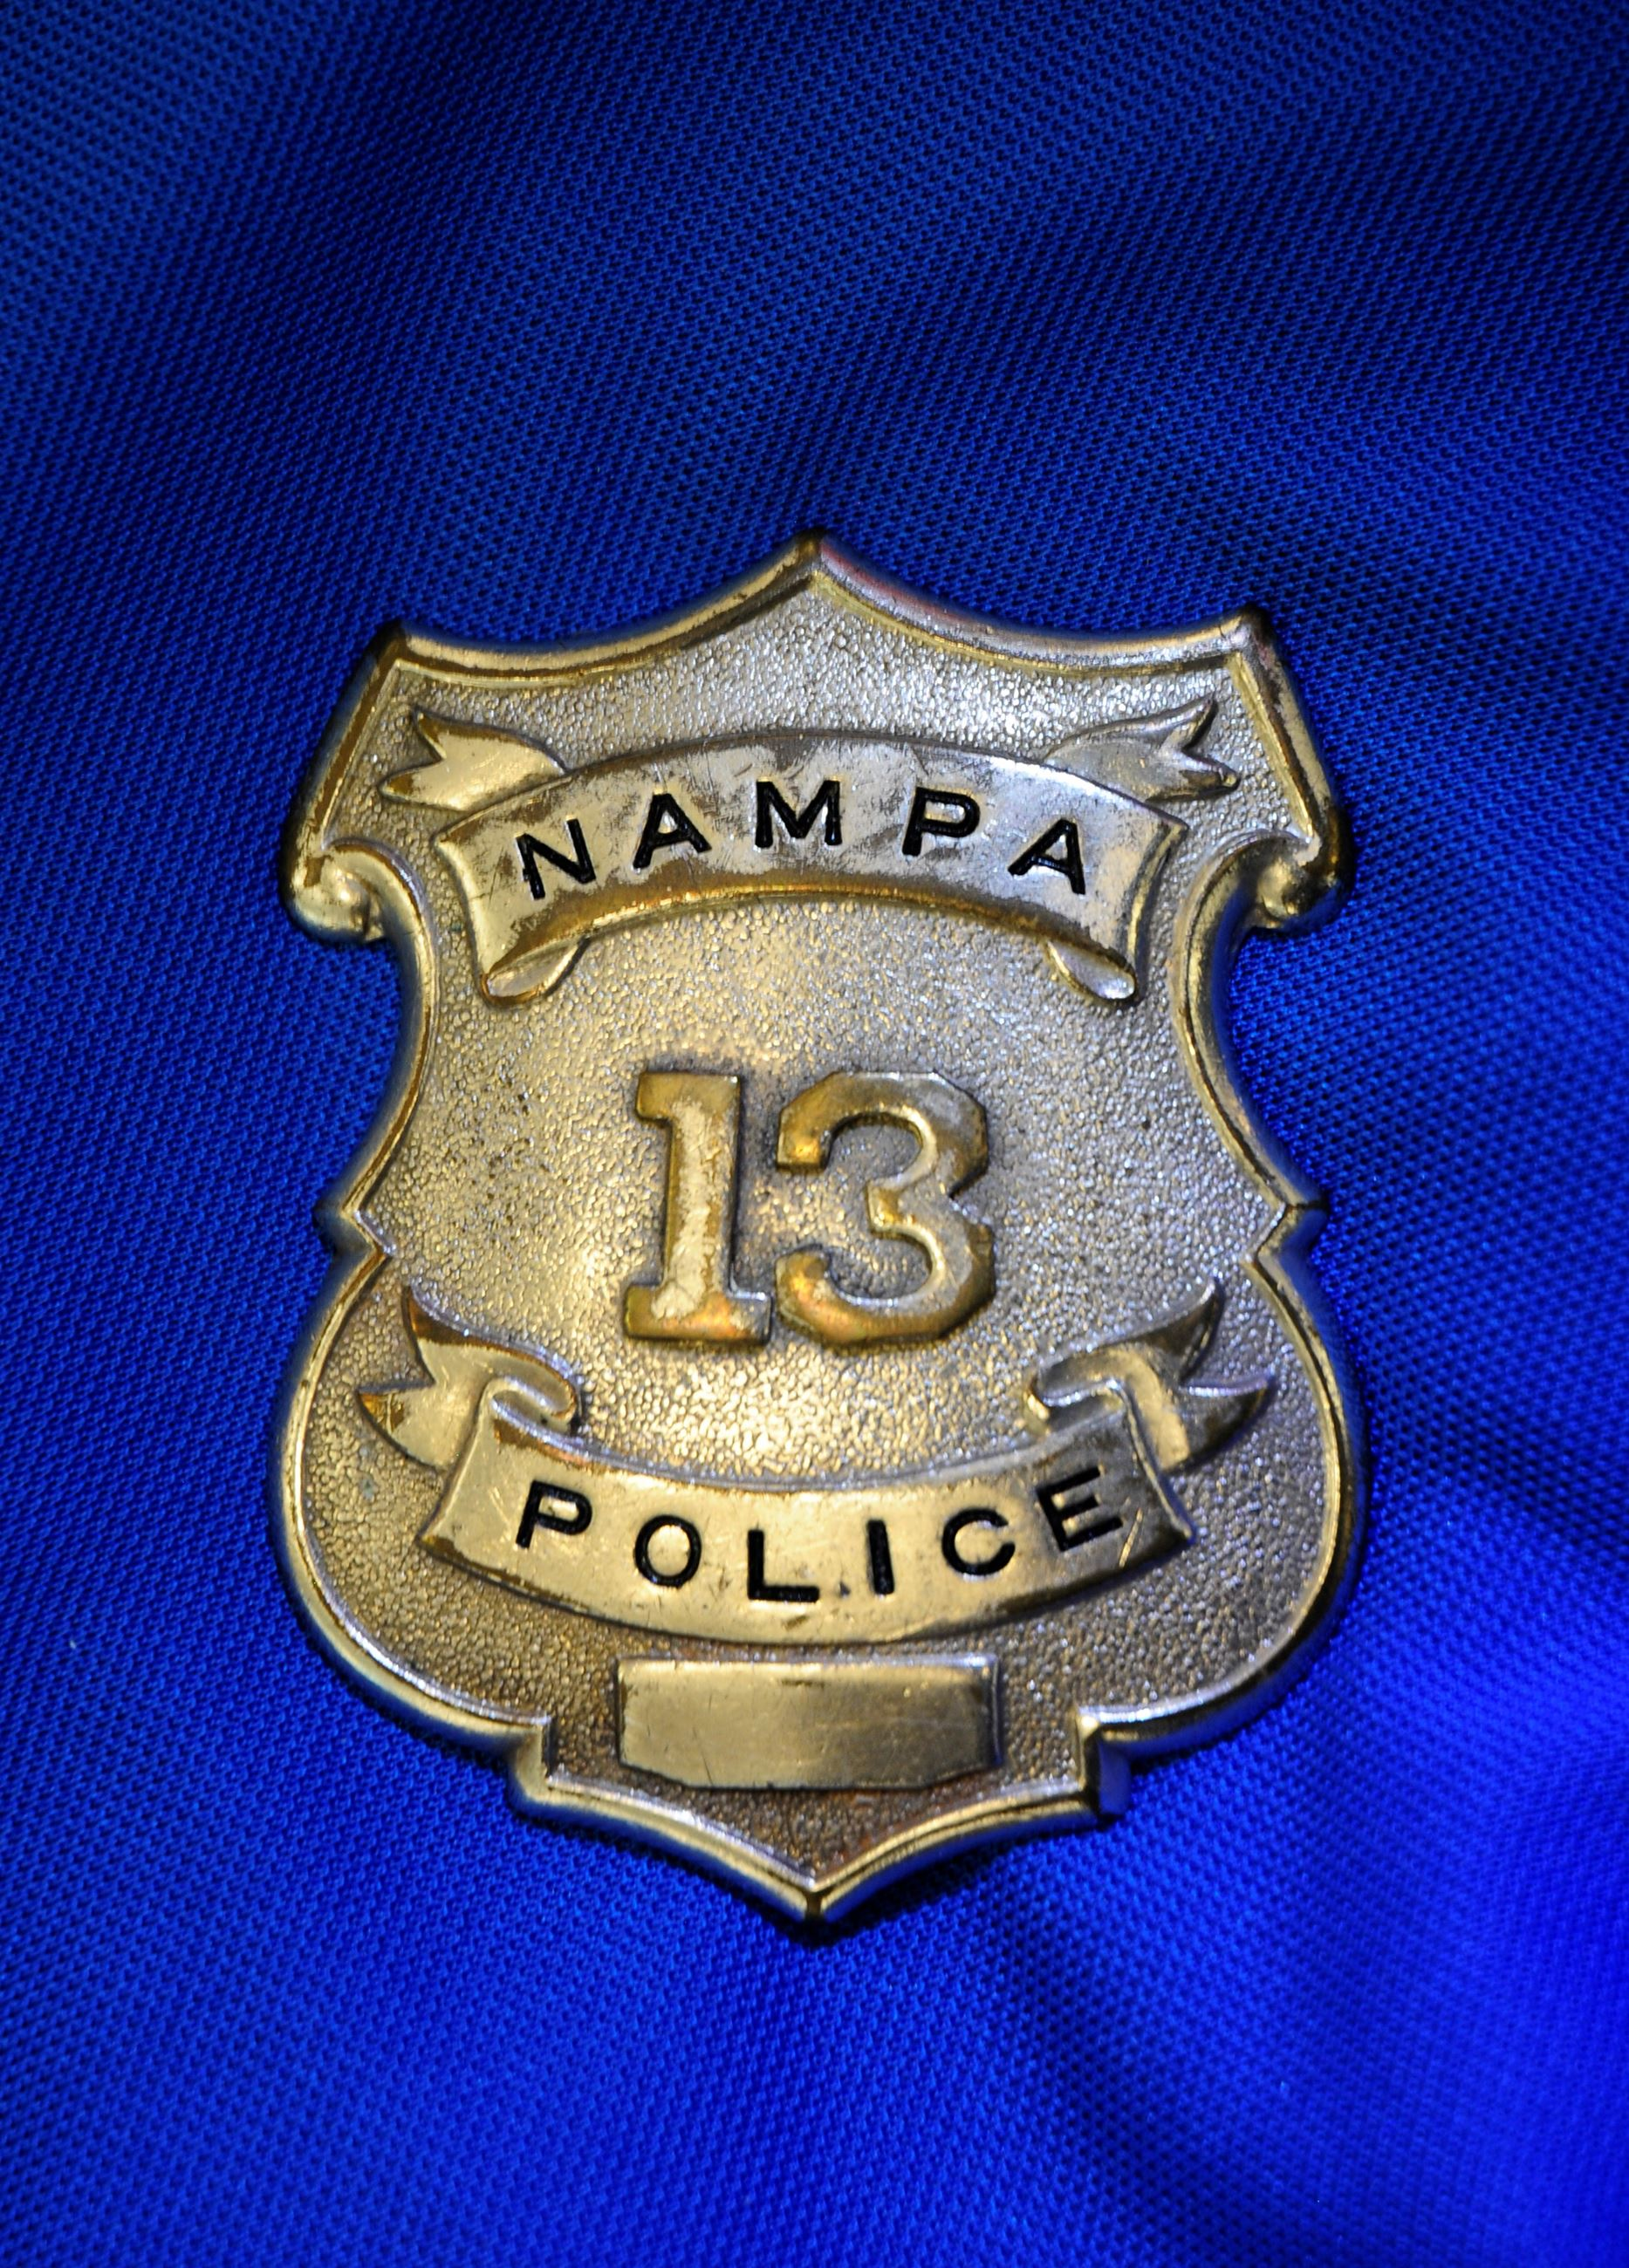 Nampa Police badge (believed to be first style adopted by dept)